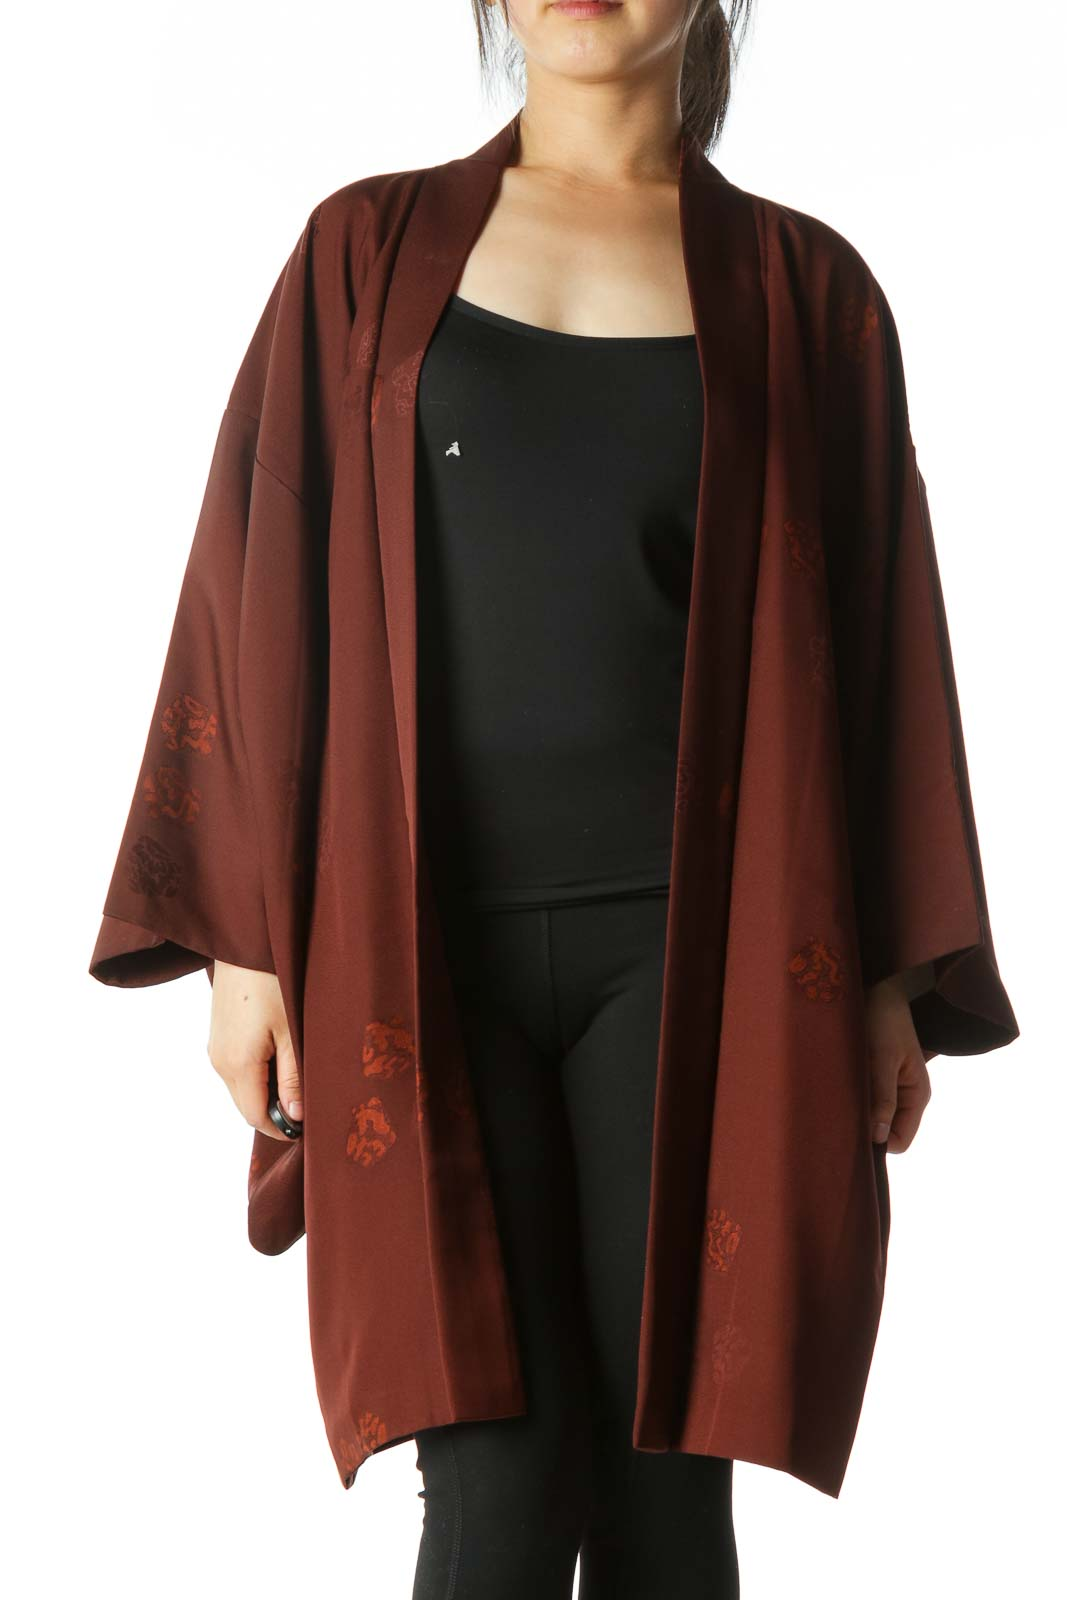 Brown Jacquard Arm-Opening Square-Sleeves Cape Front